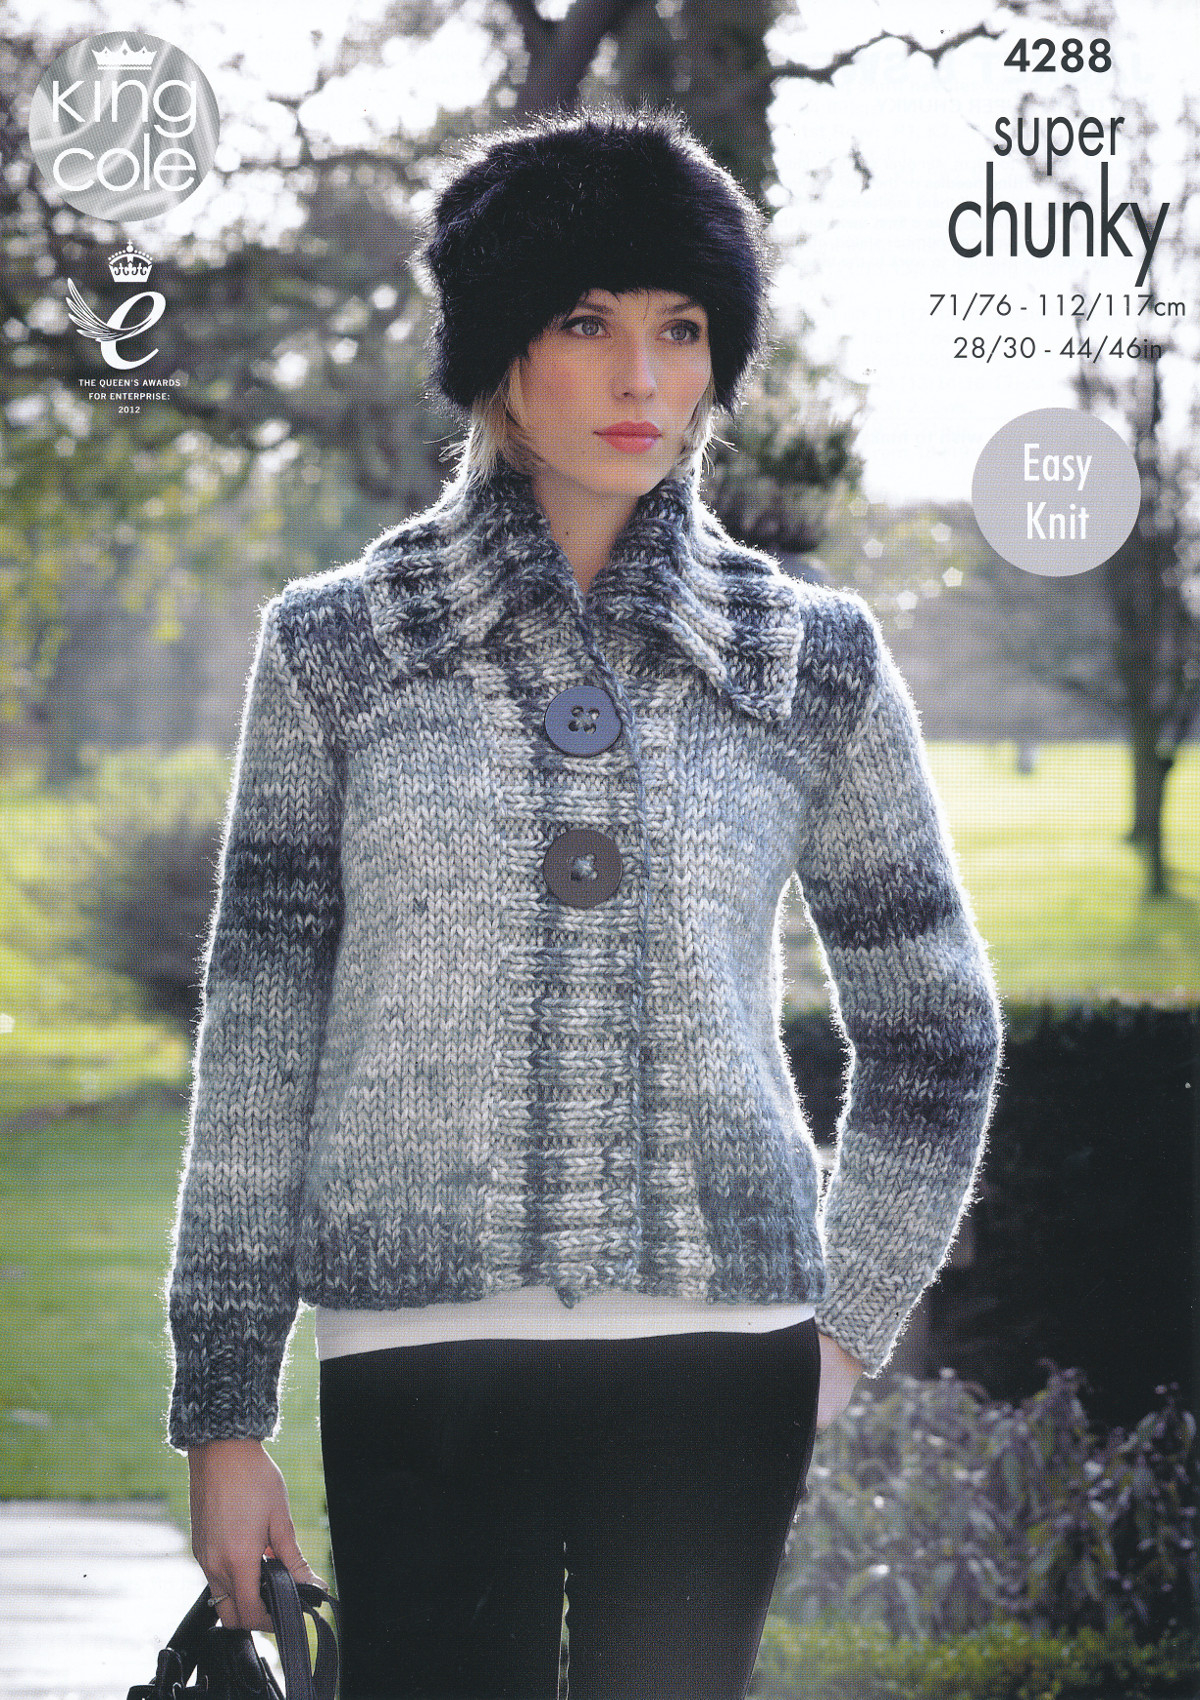 Sweater Jacket Knitting Pattern Details About Ladies Super Chunky Knitting Pattern King Cole Ribbed Jacket Sweater Jumper 4288